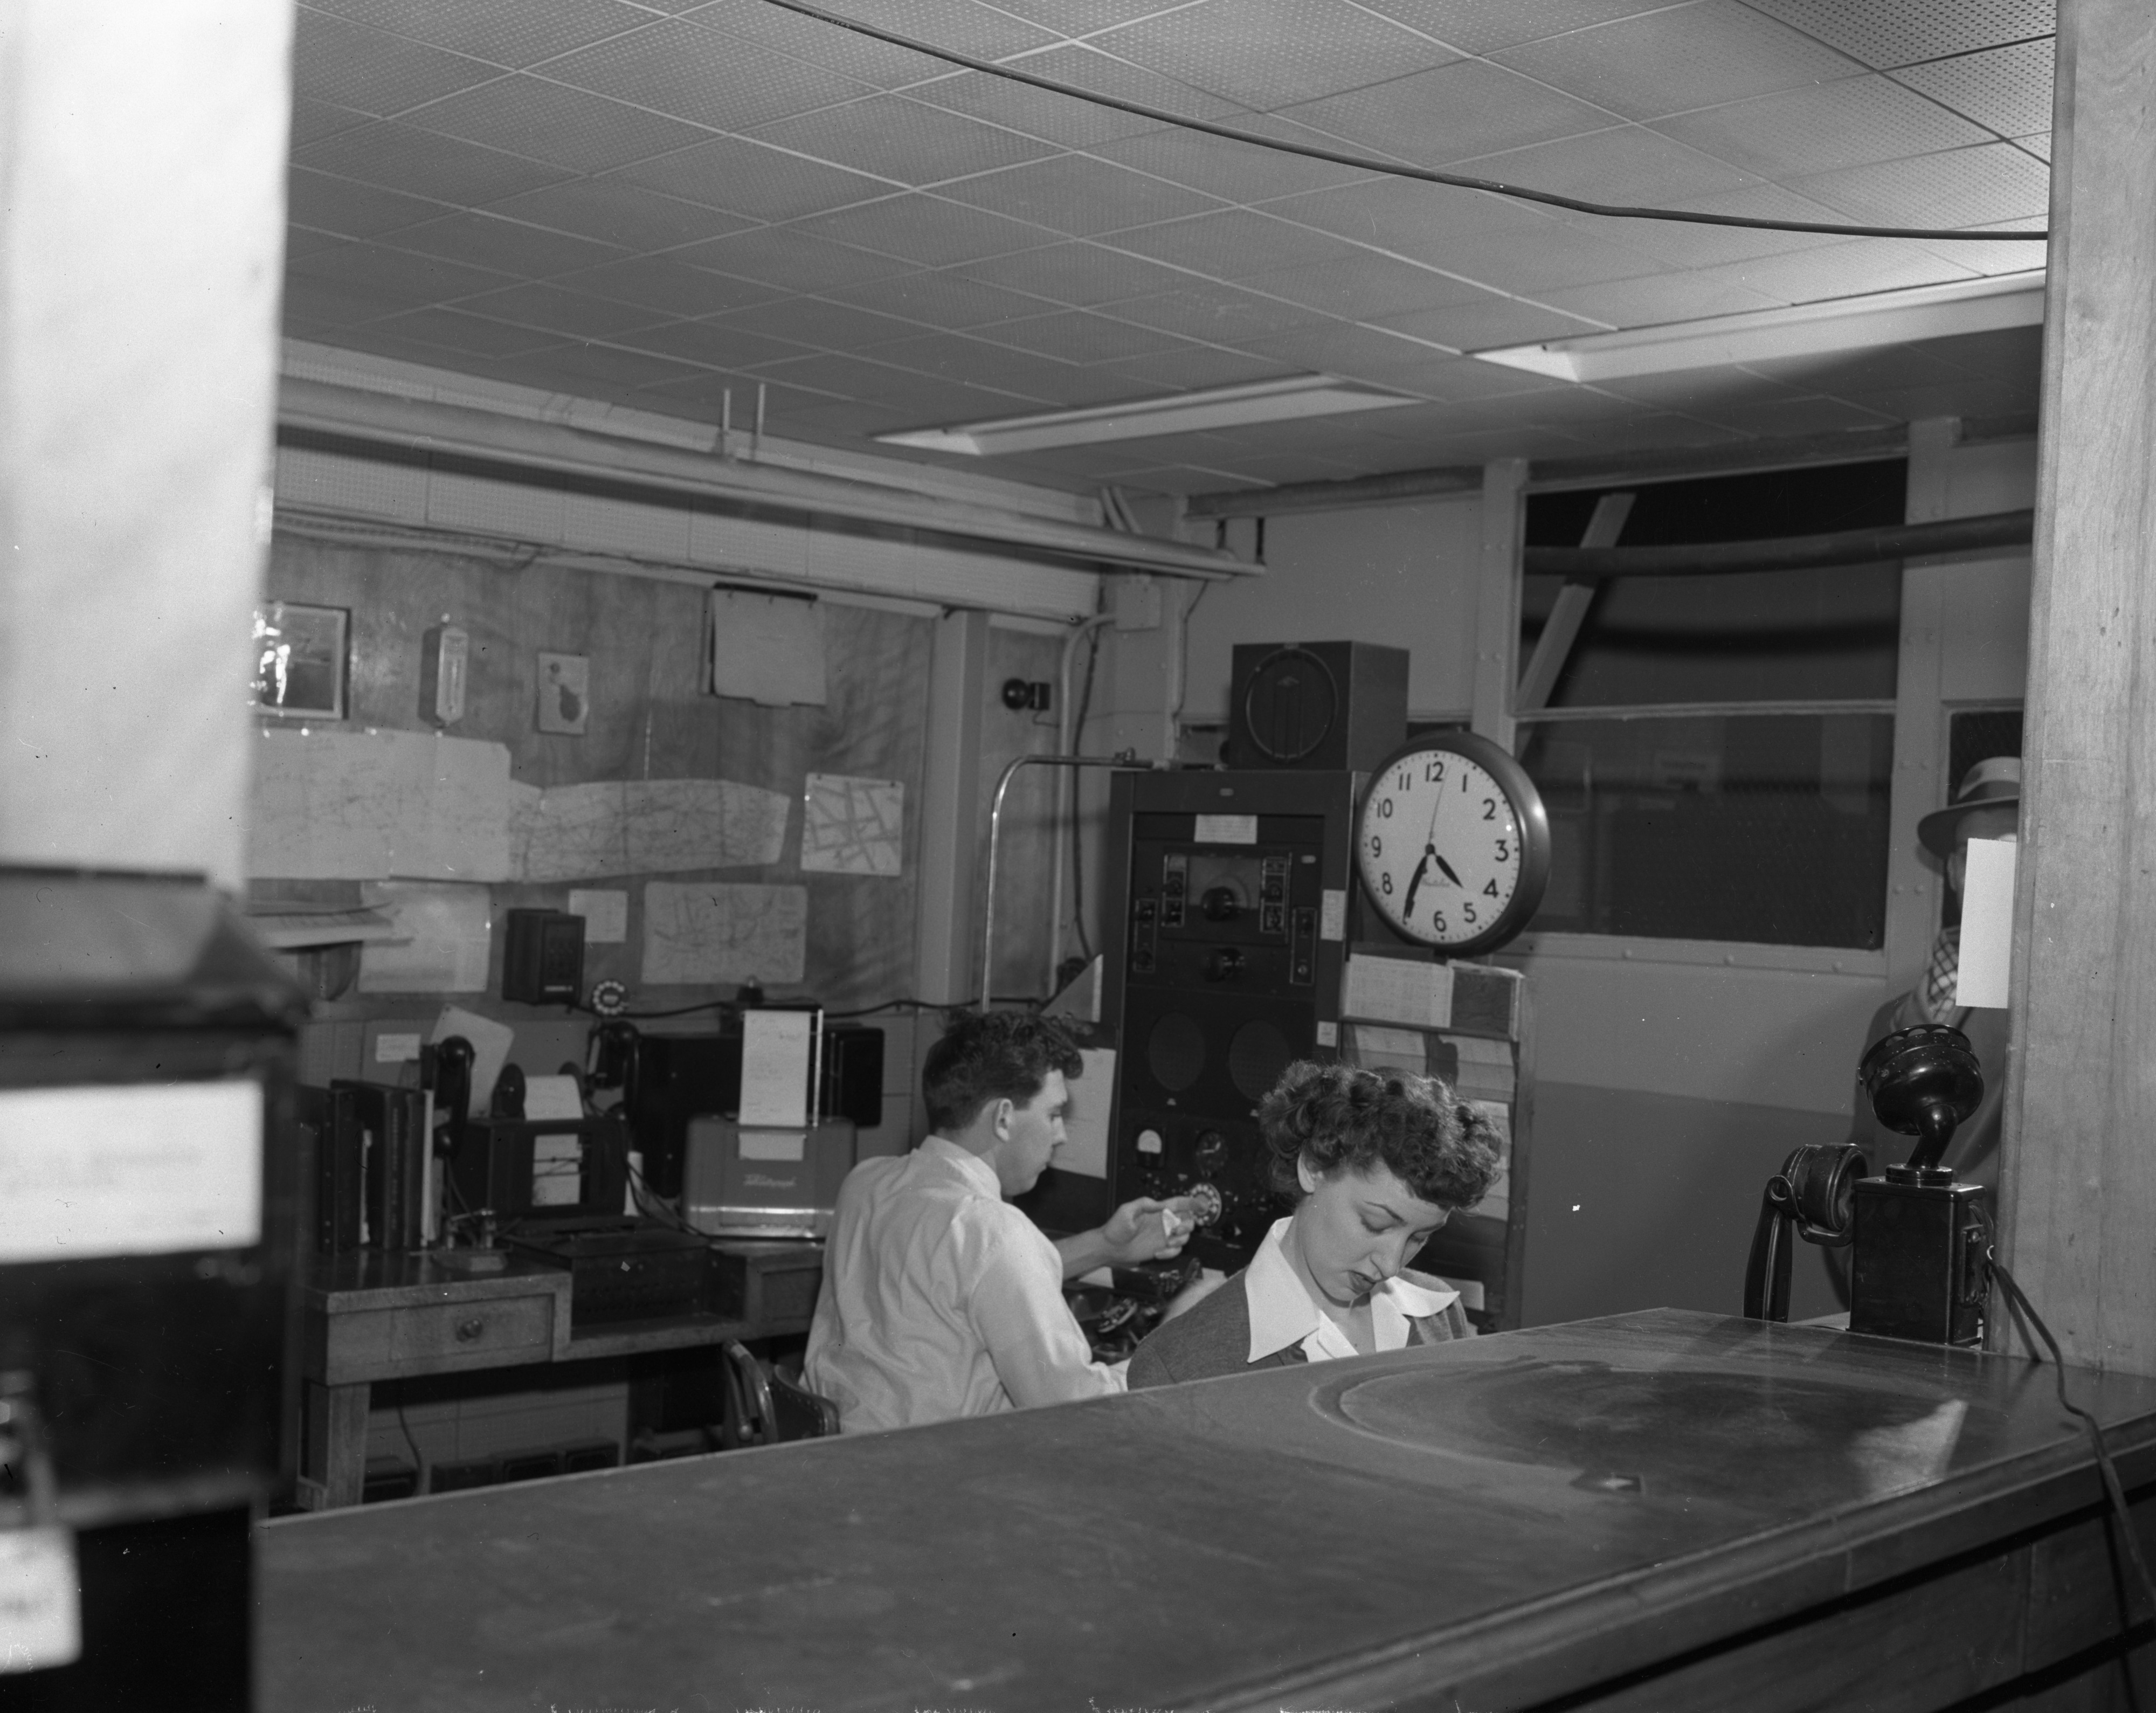 Northwest Airlines Operations Office at Willow Run Airport, February 1954 image